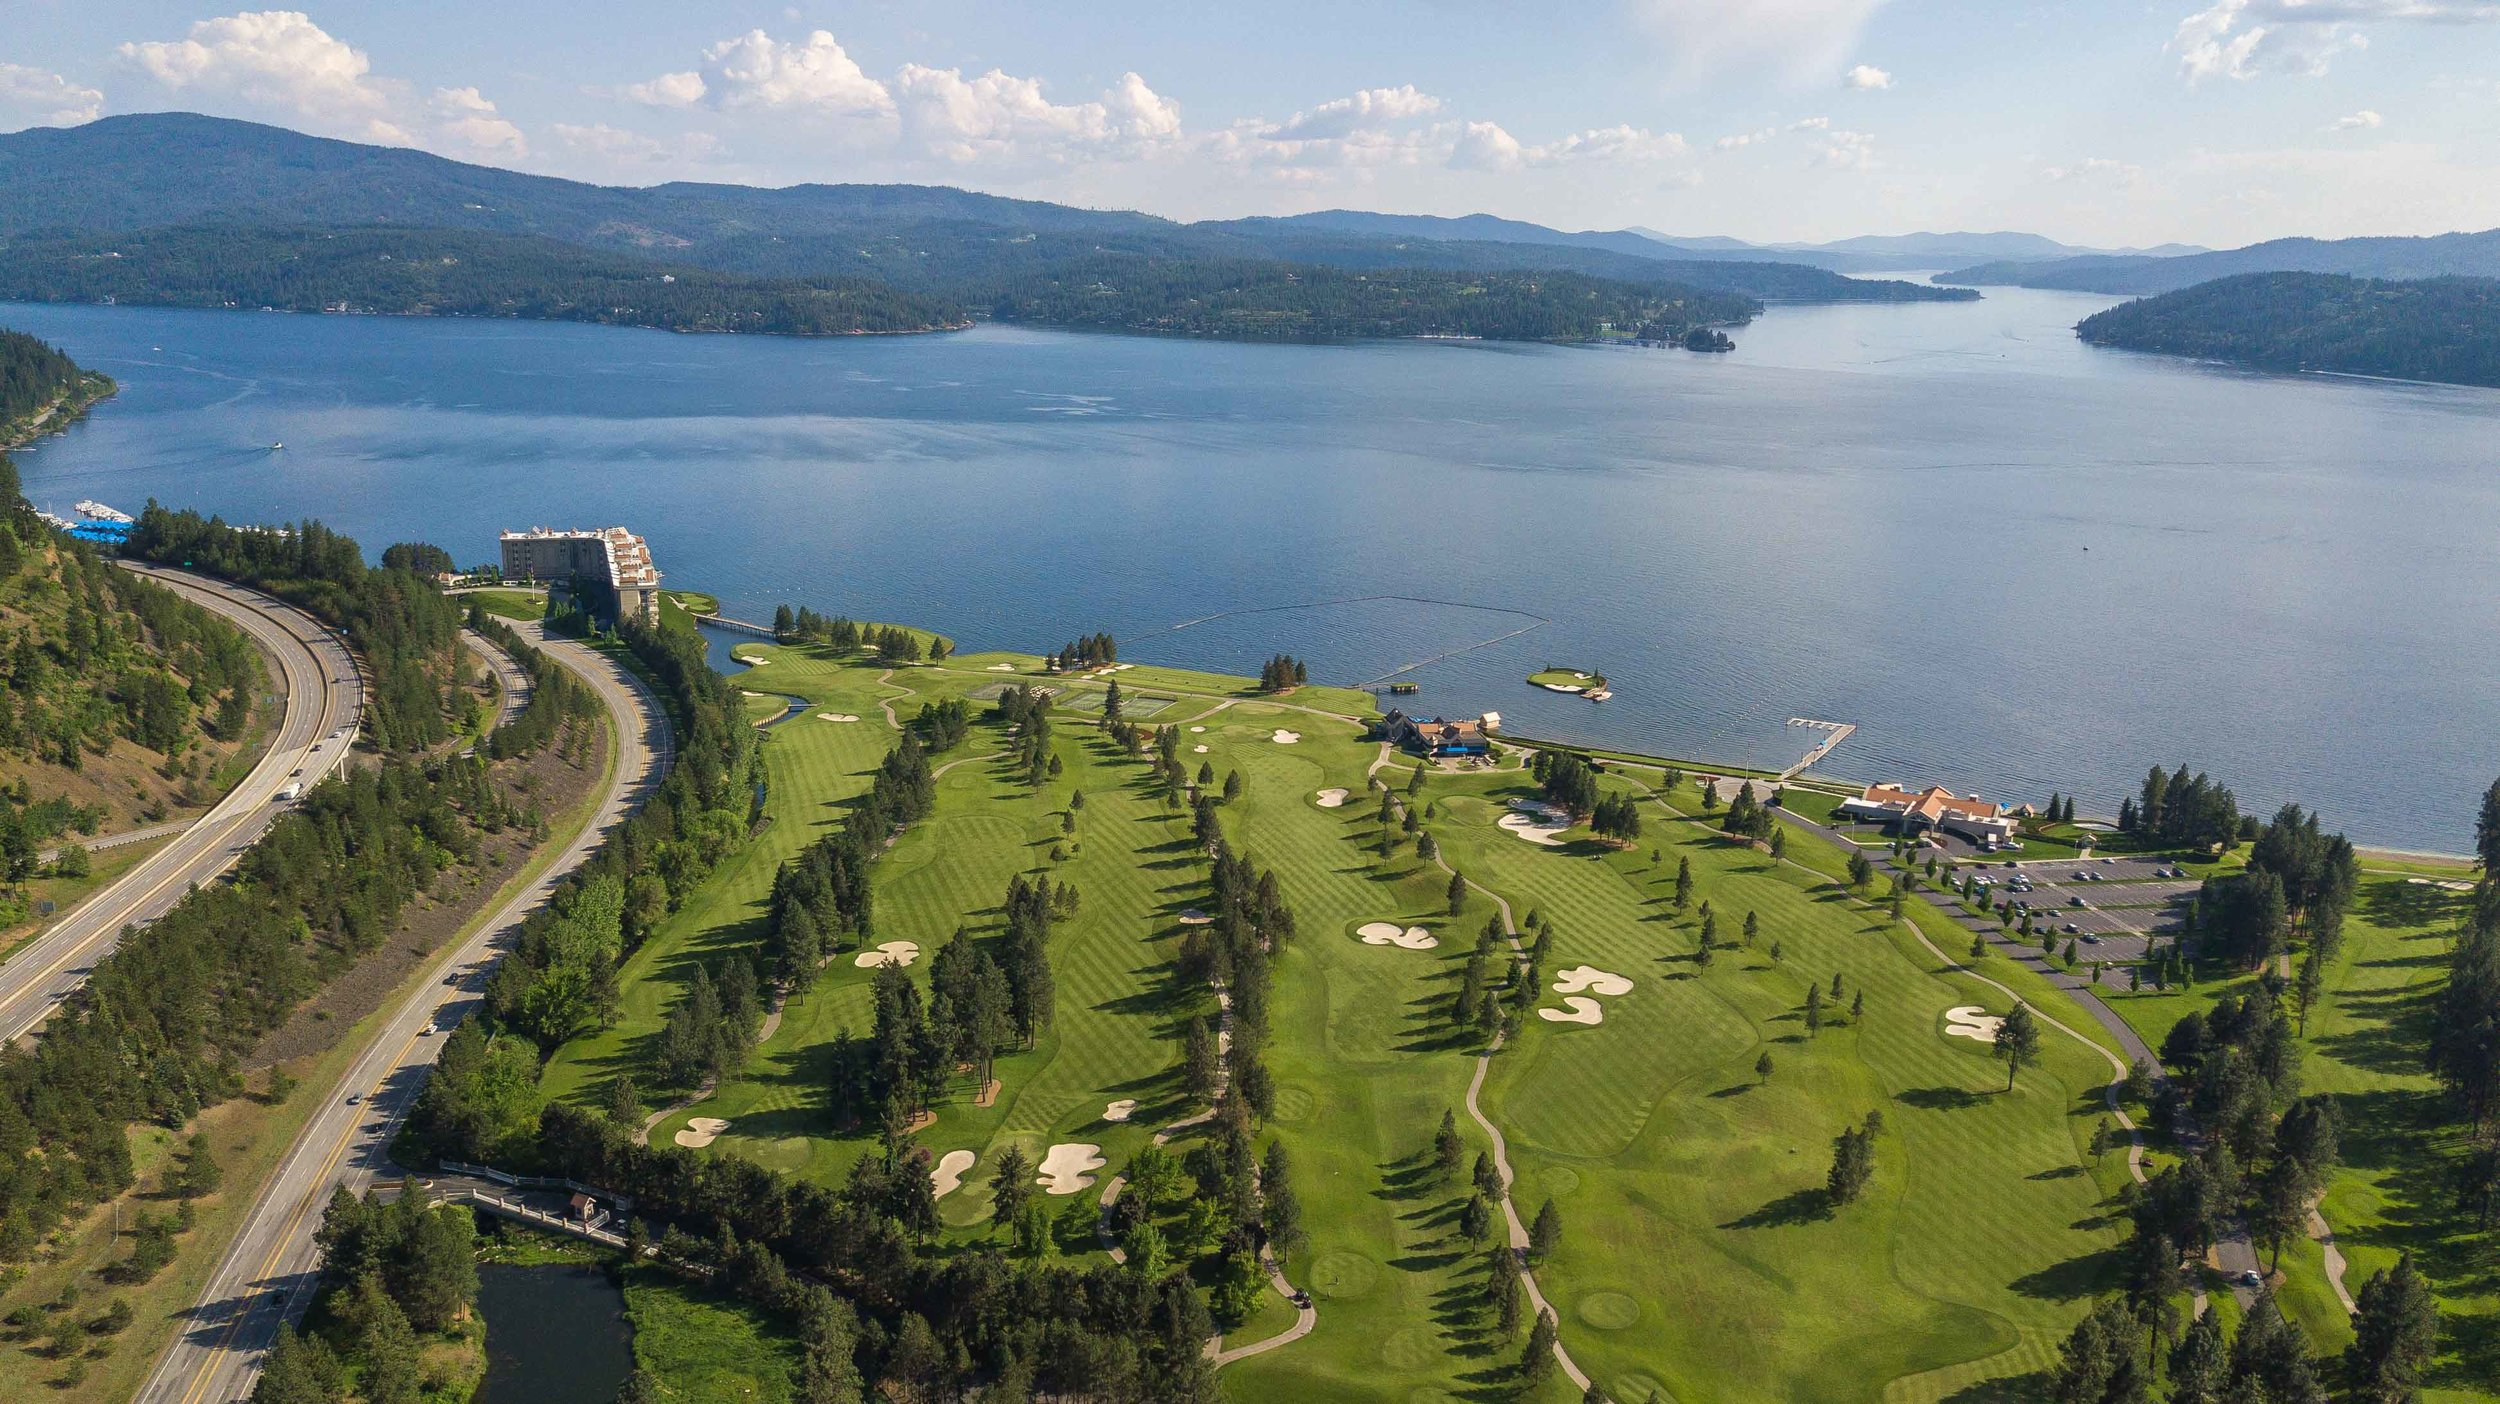 The view from above CDA Golf Resort.